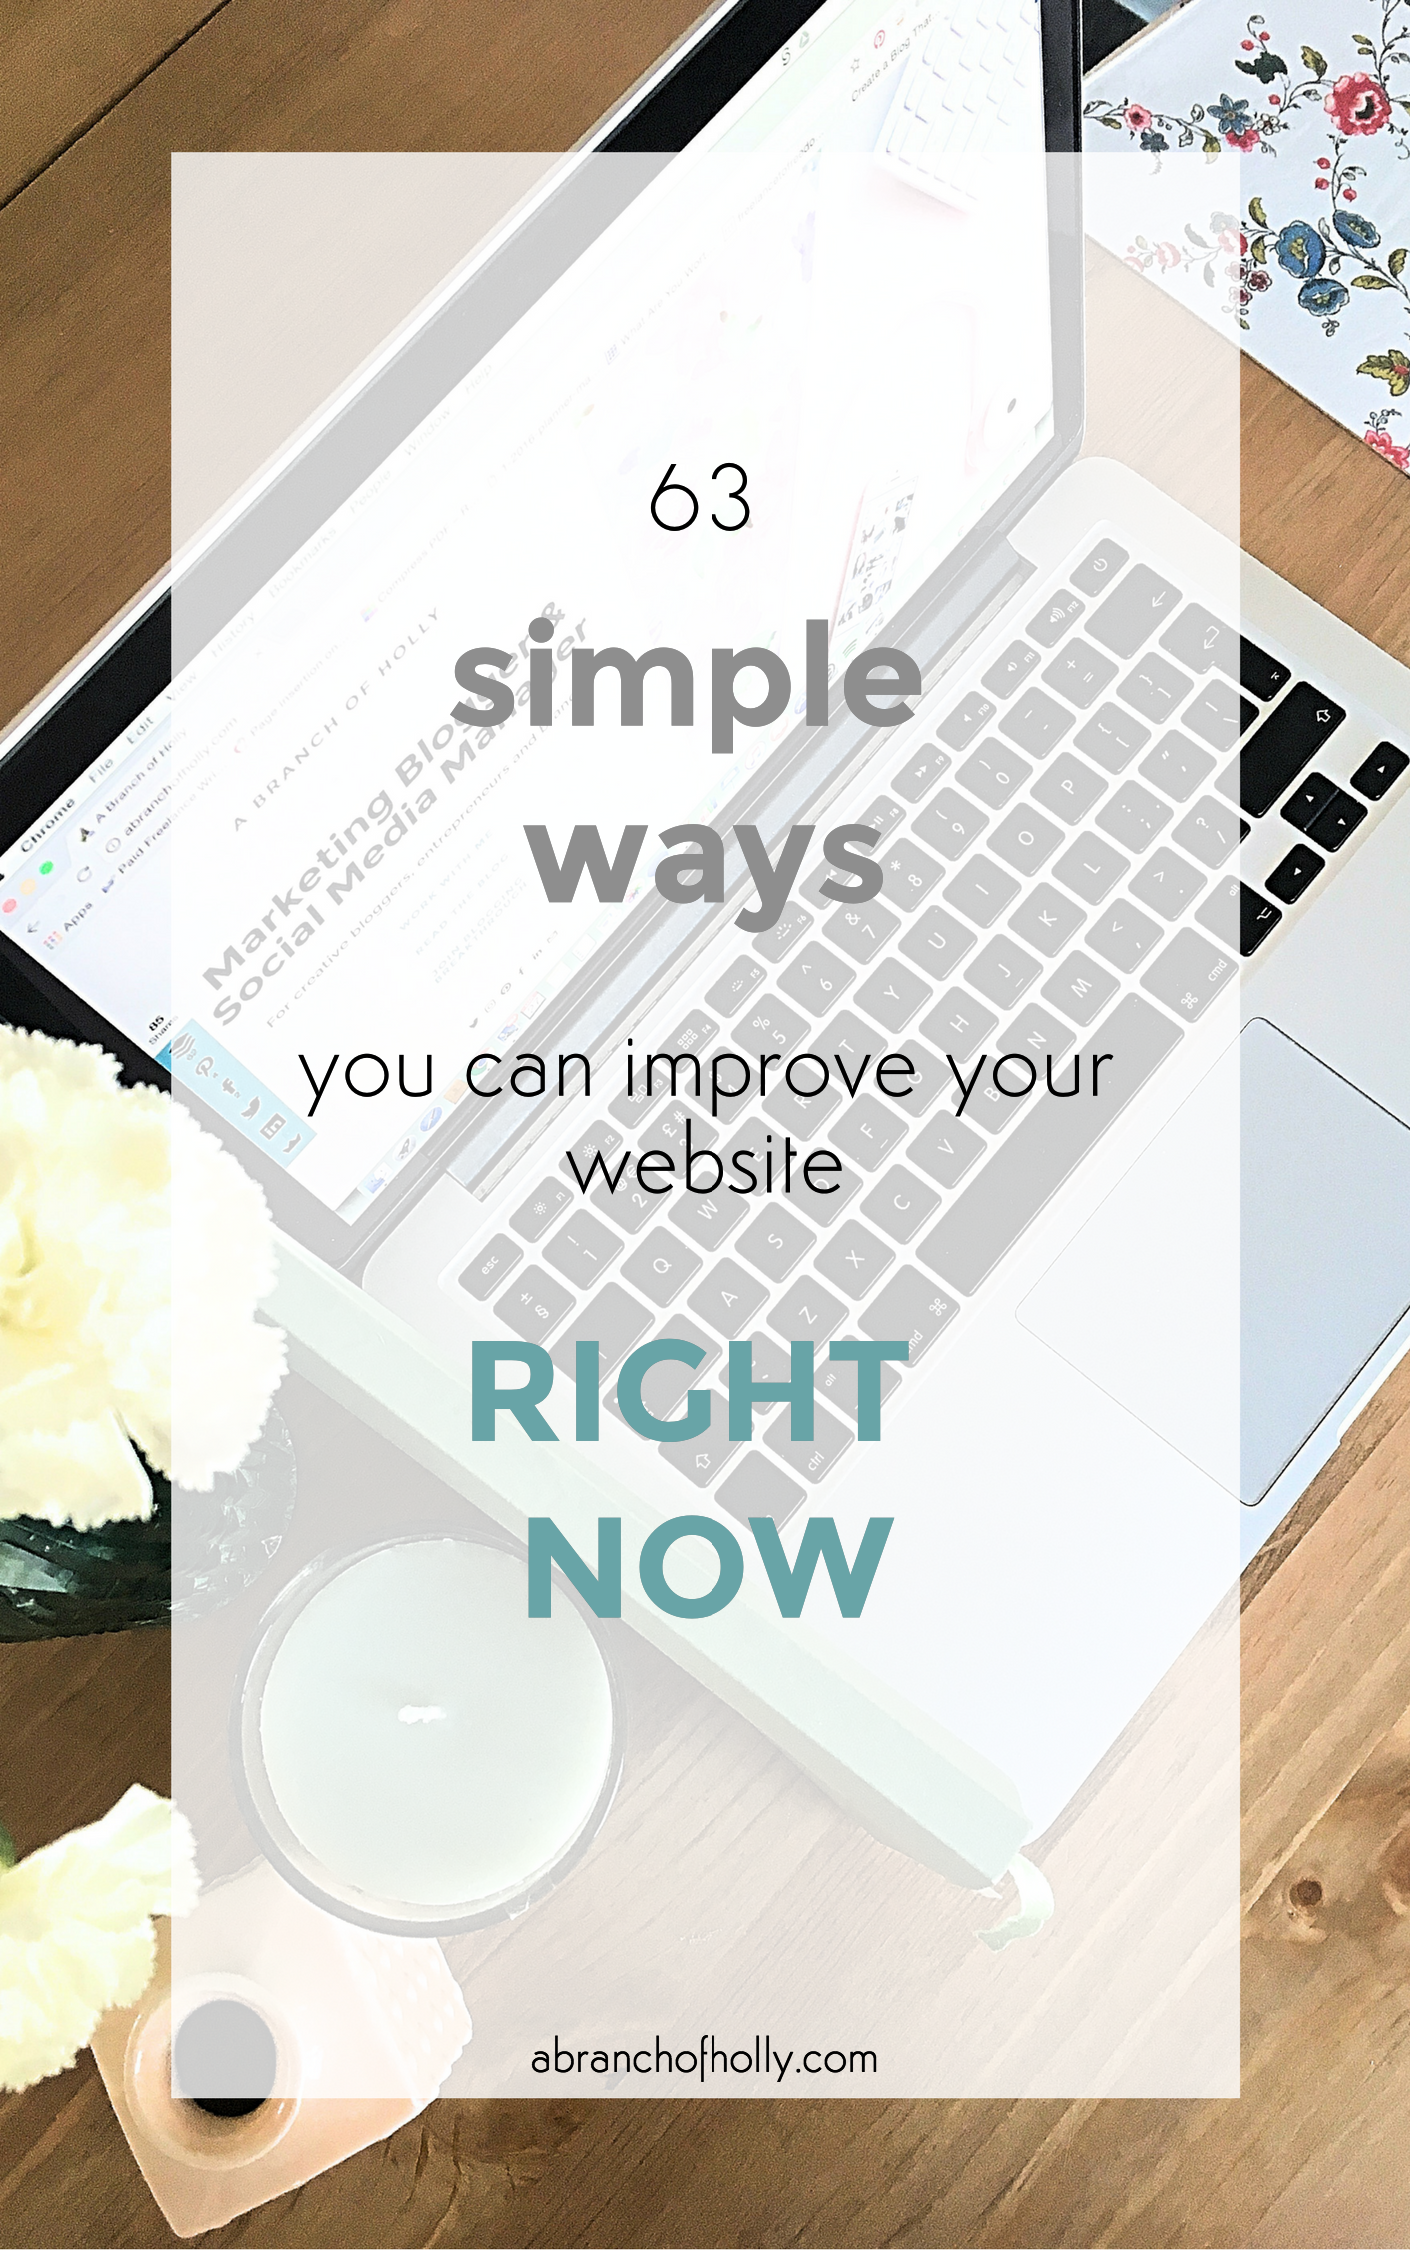 simple ways to improve your website right now